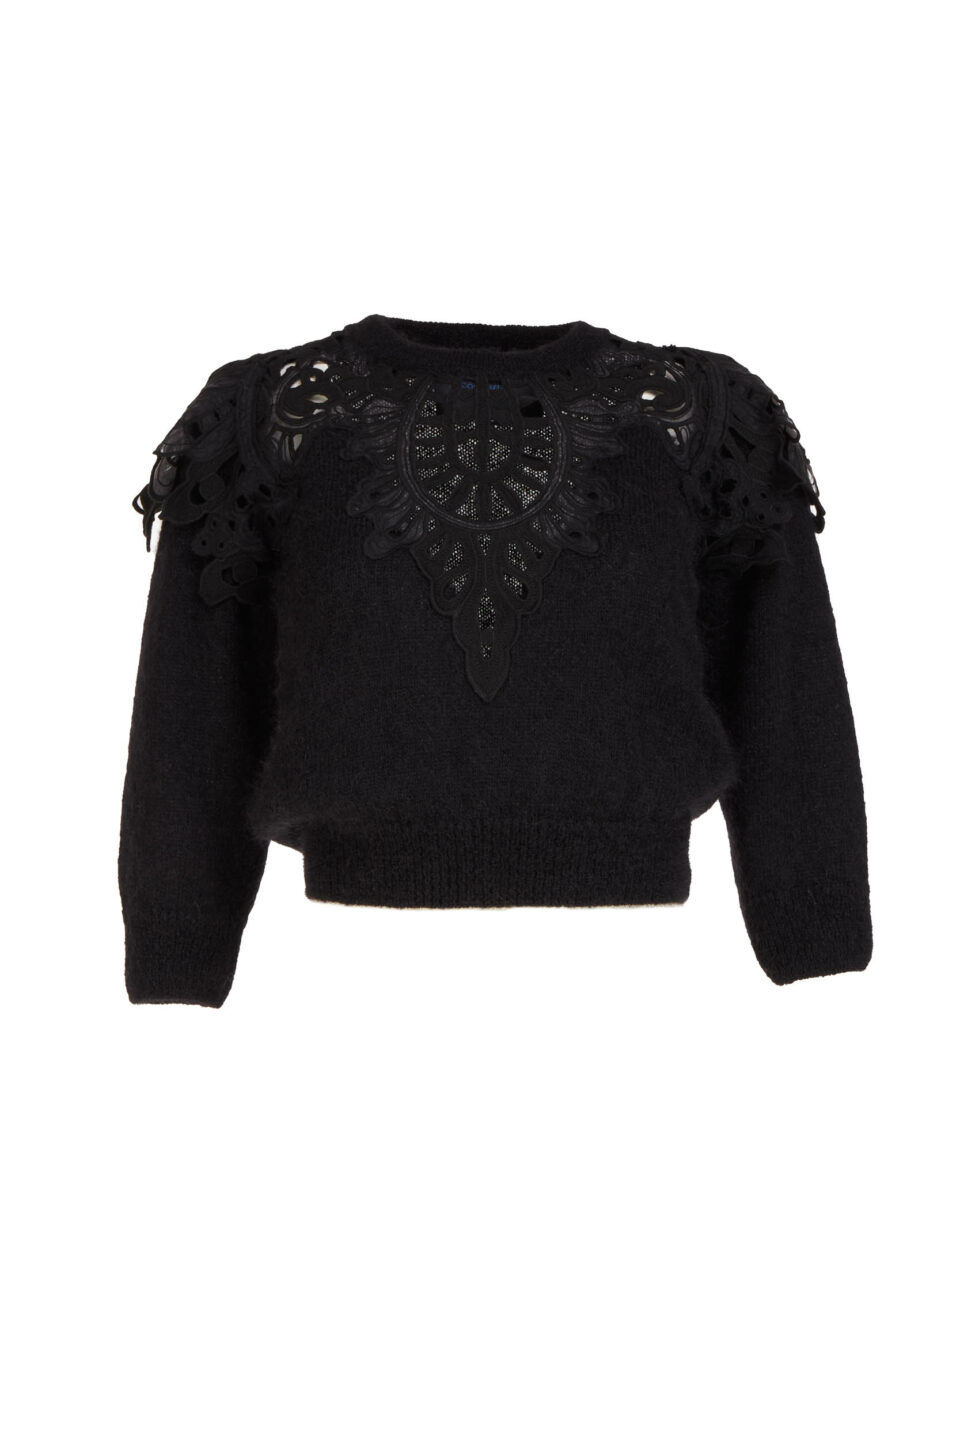 Olivia FW2180 Black Sustainable Mohair Cropped Knit Sweater with Embroidered Lace Appliques